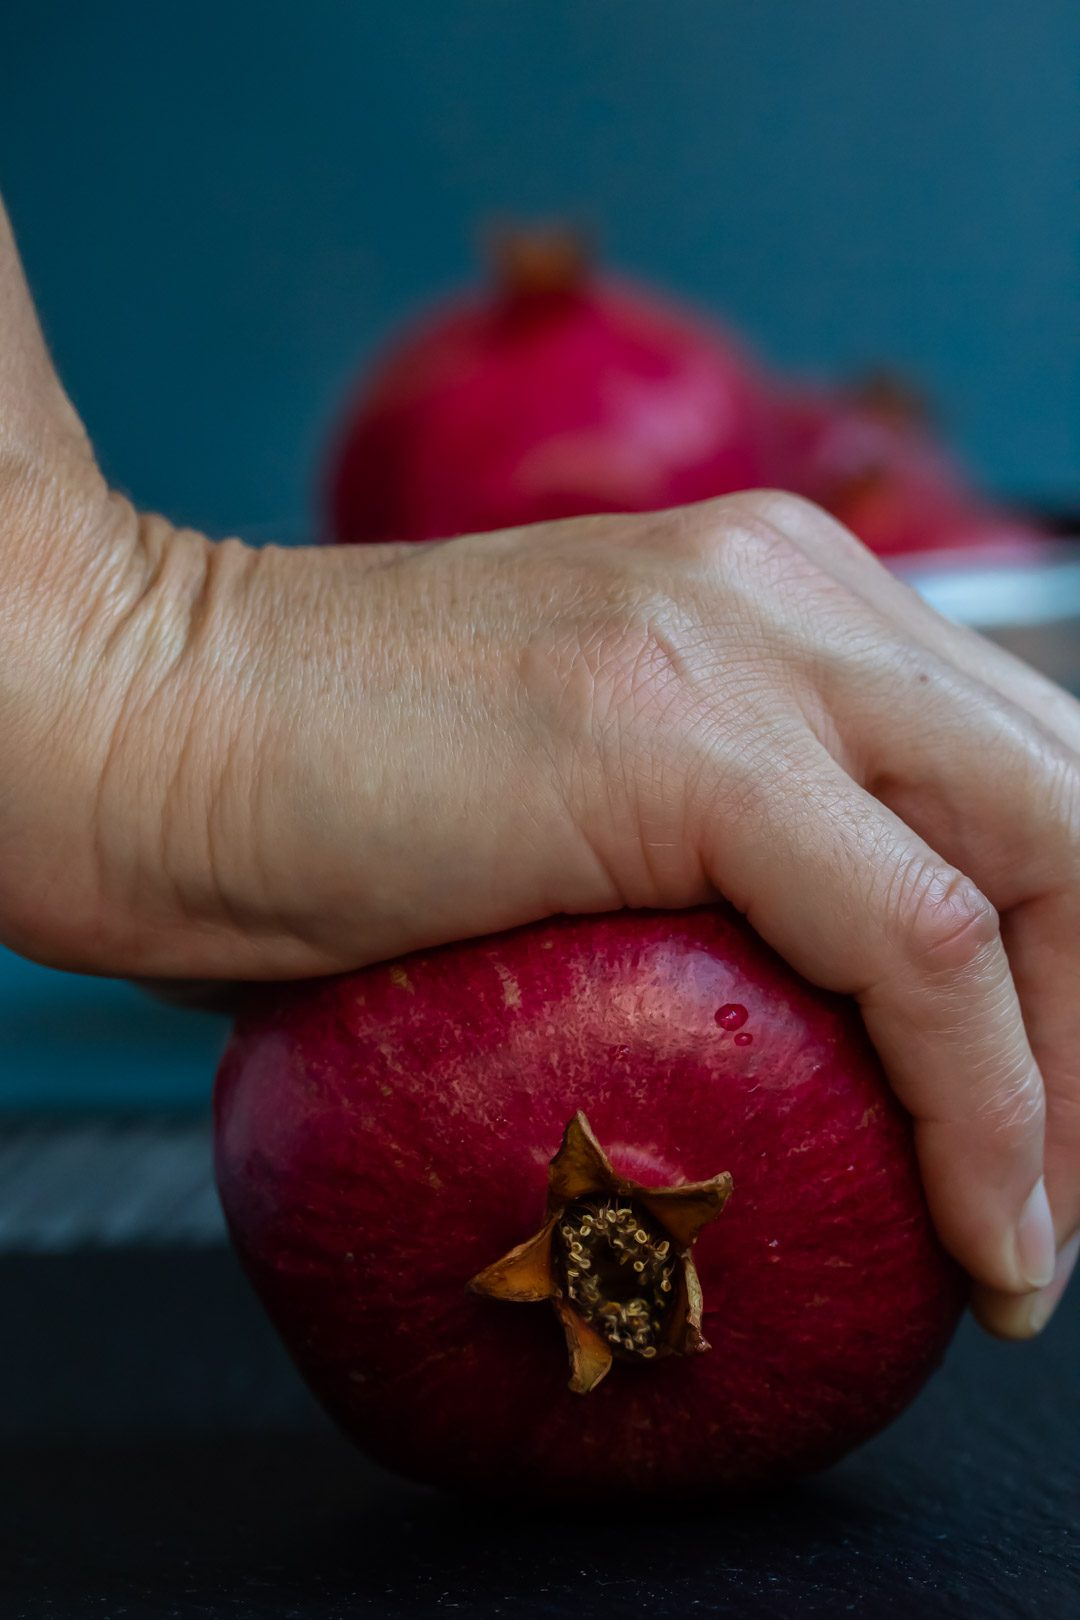 rolling a pomegranate by hand to split the membranes and free the seeds to make grenadine